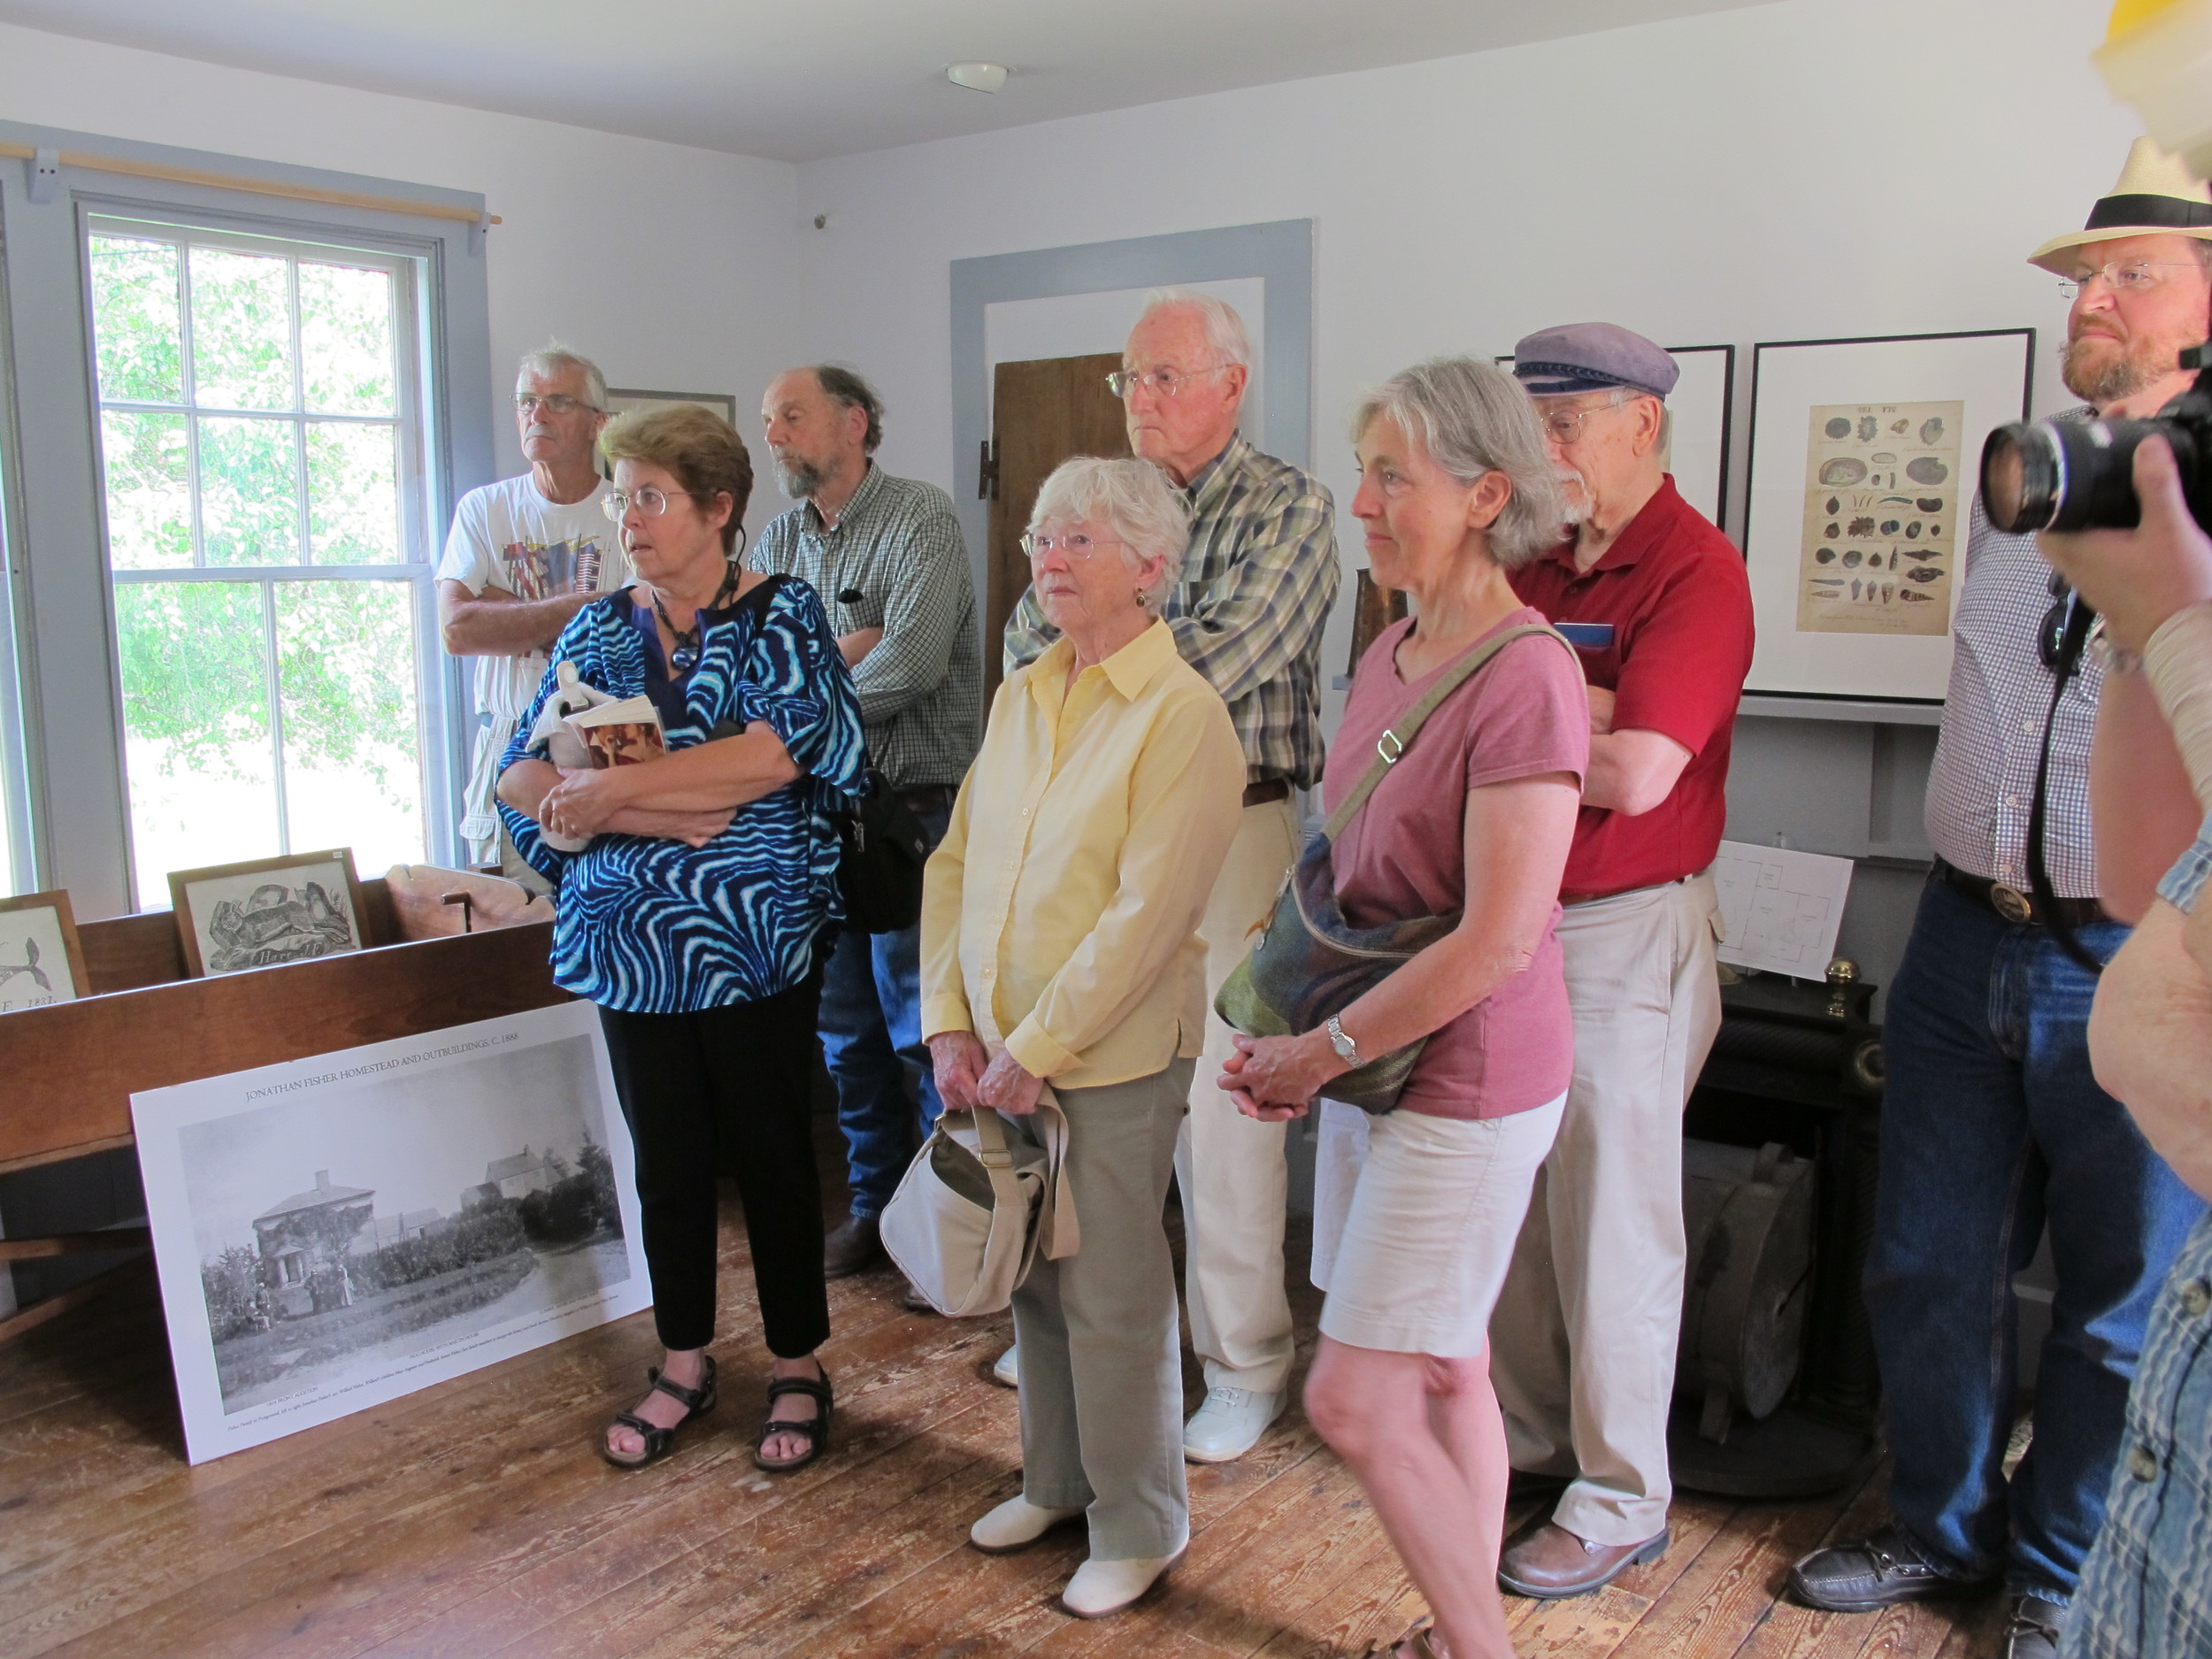 Tours of Jonathan Fisher's historic homestead in Blue Hill, Maine are a popular summer activity.